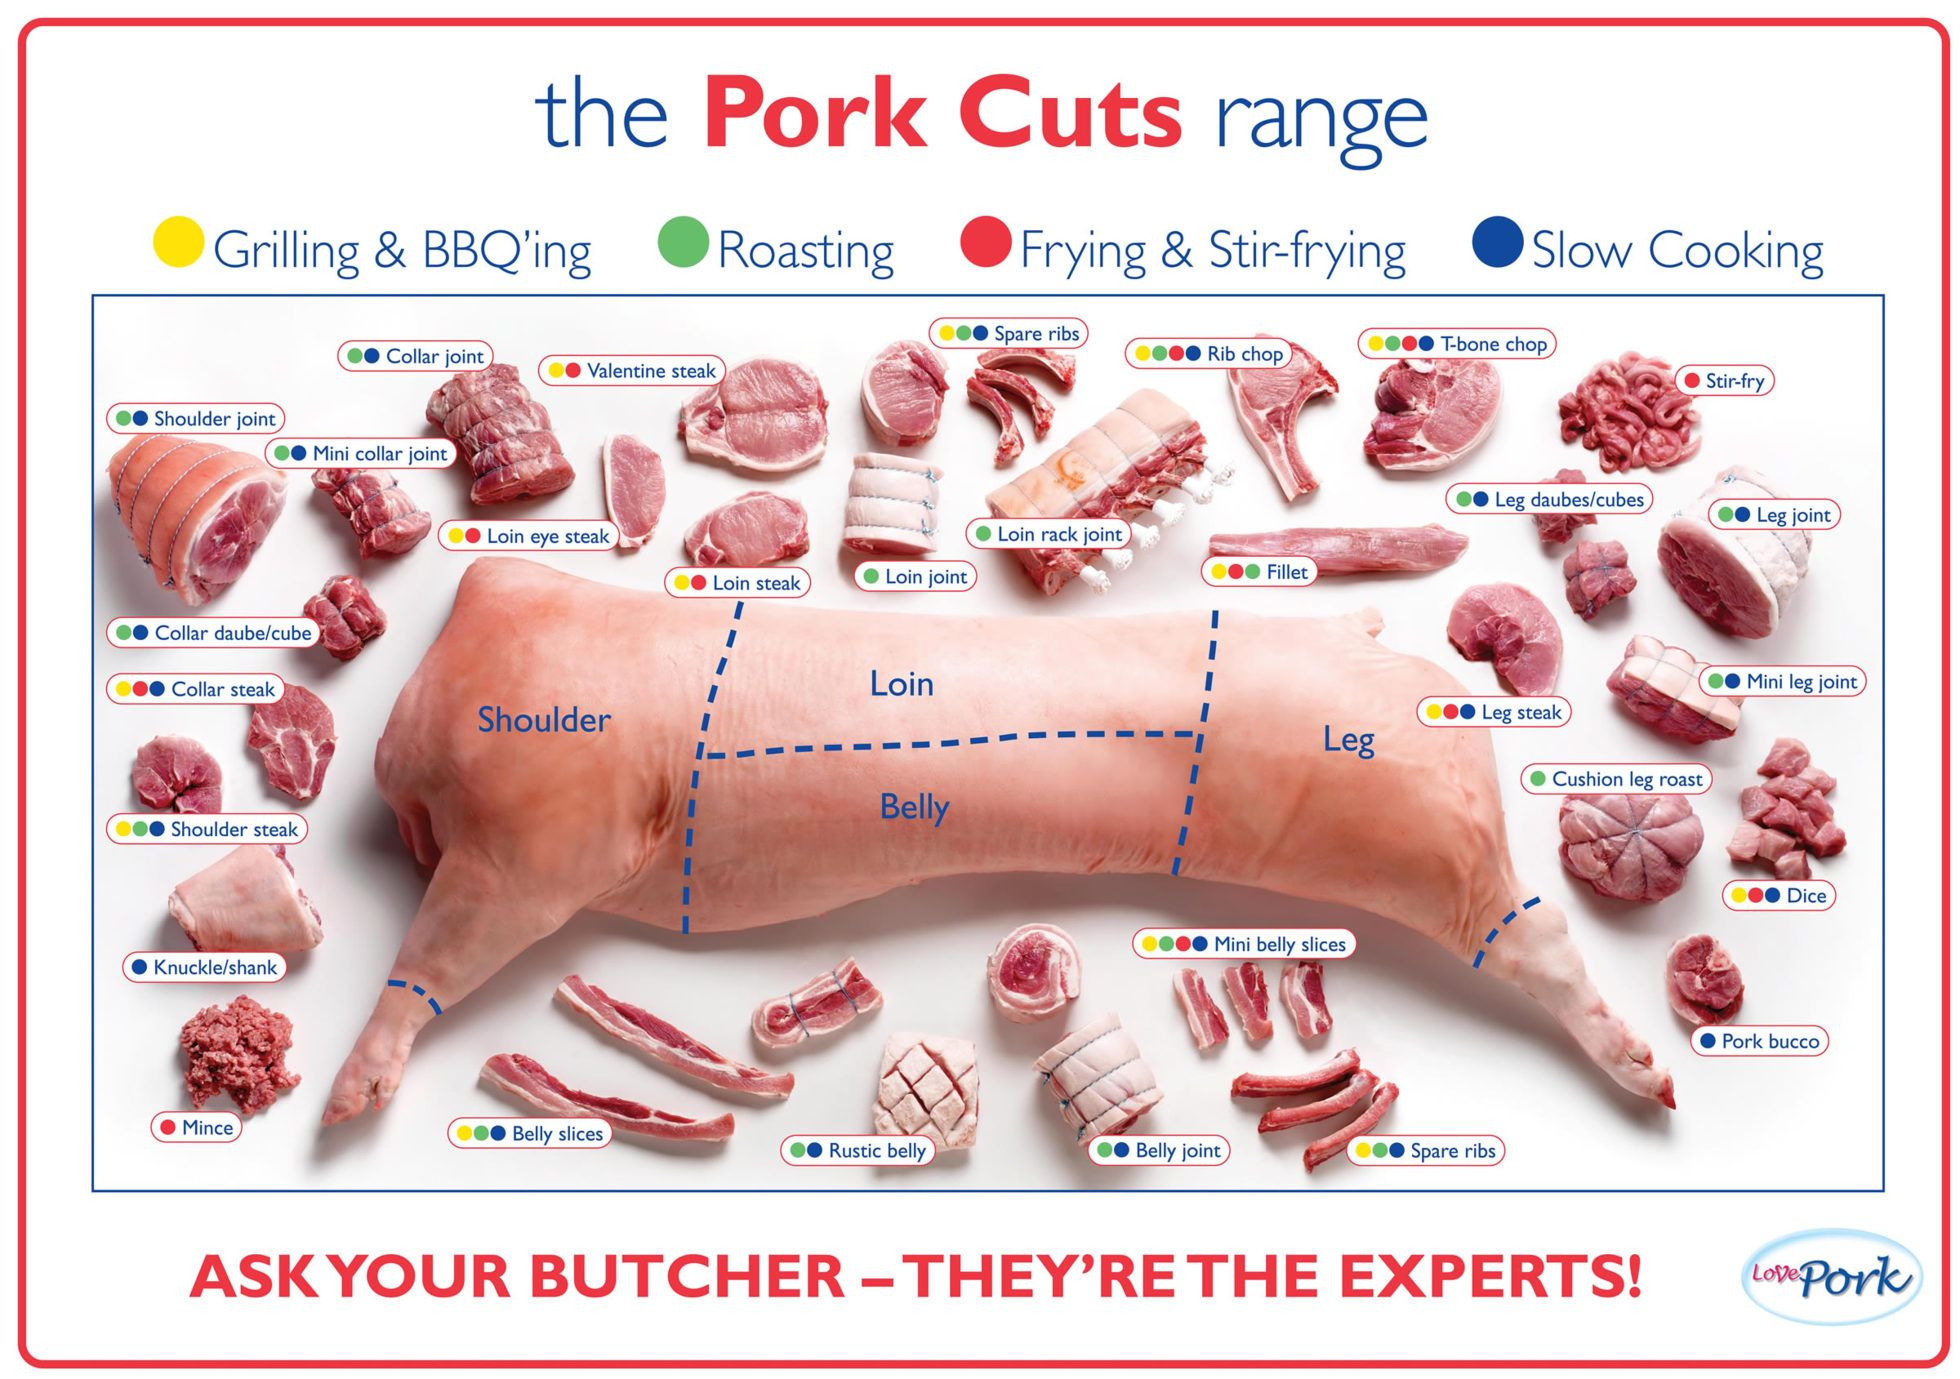 whats in half a pig share 23 pork chops 2 roasts 1 ham 8 lbs of spare ribs pig diagram spare ribs diagram [ 1960 x 1379 Pixel ]